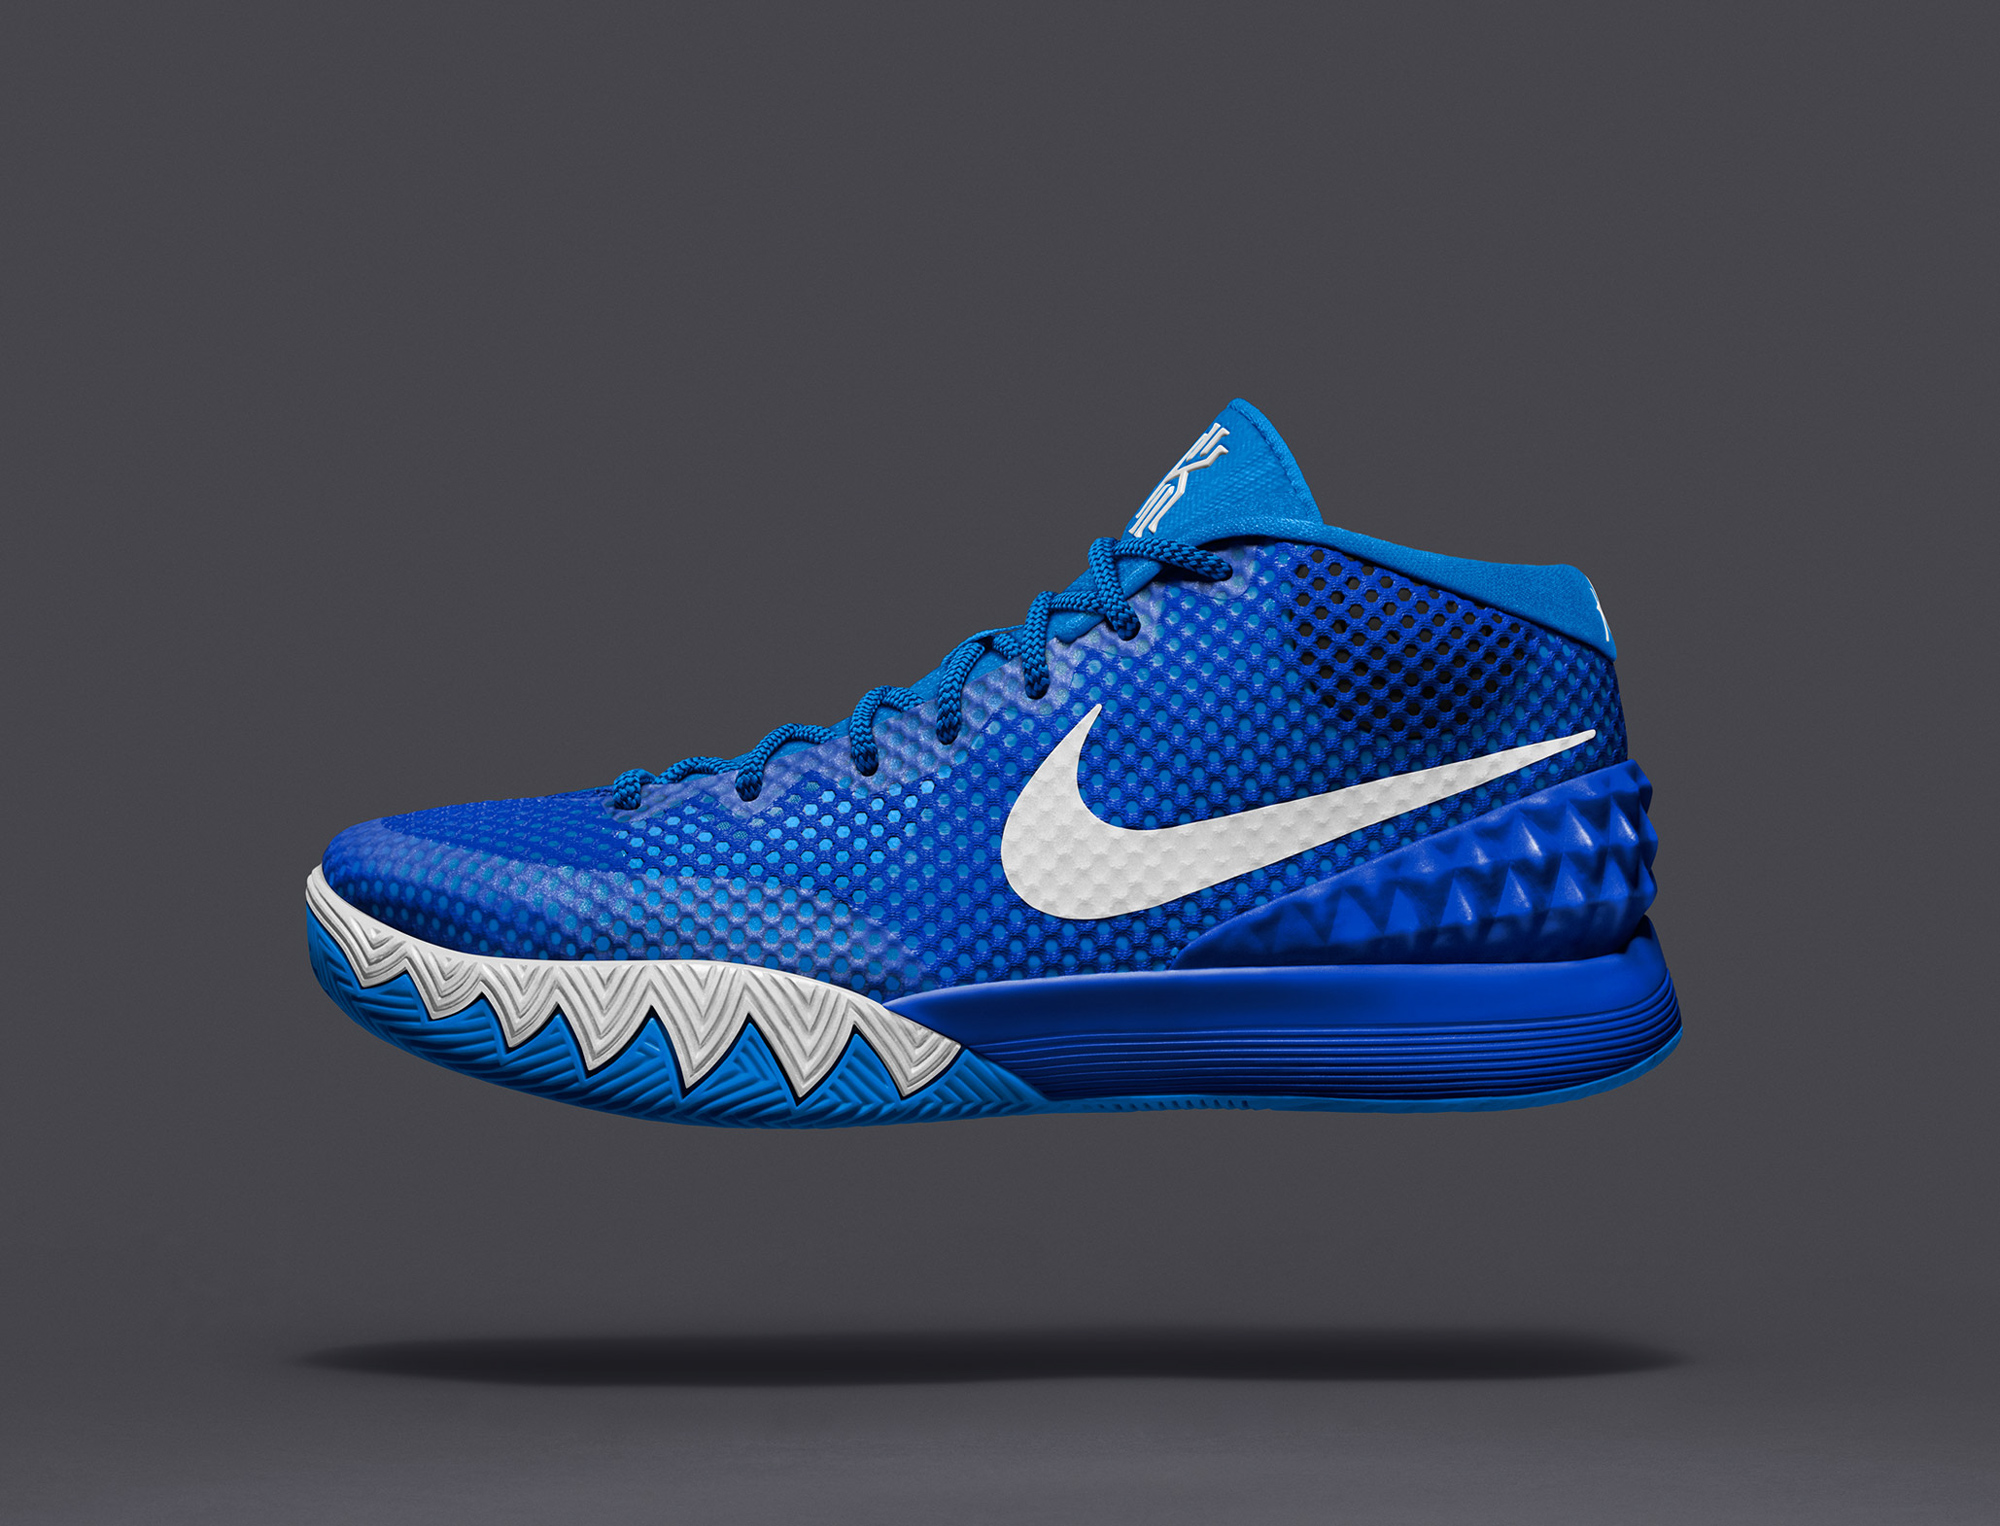 on sale 7f4df 91904 new arrivals nike kyrie 4 mens c0596 411a2  cheapest los angeles 1a615  d2c3c kyrie irving unveils the kyrie 1 nikeid shoe in brooklyn ton